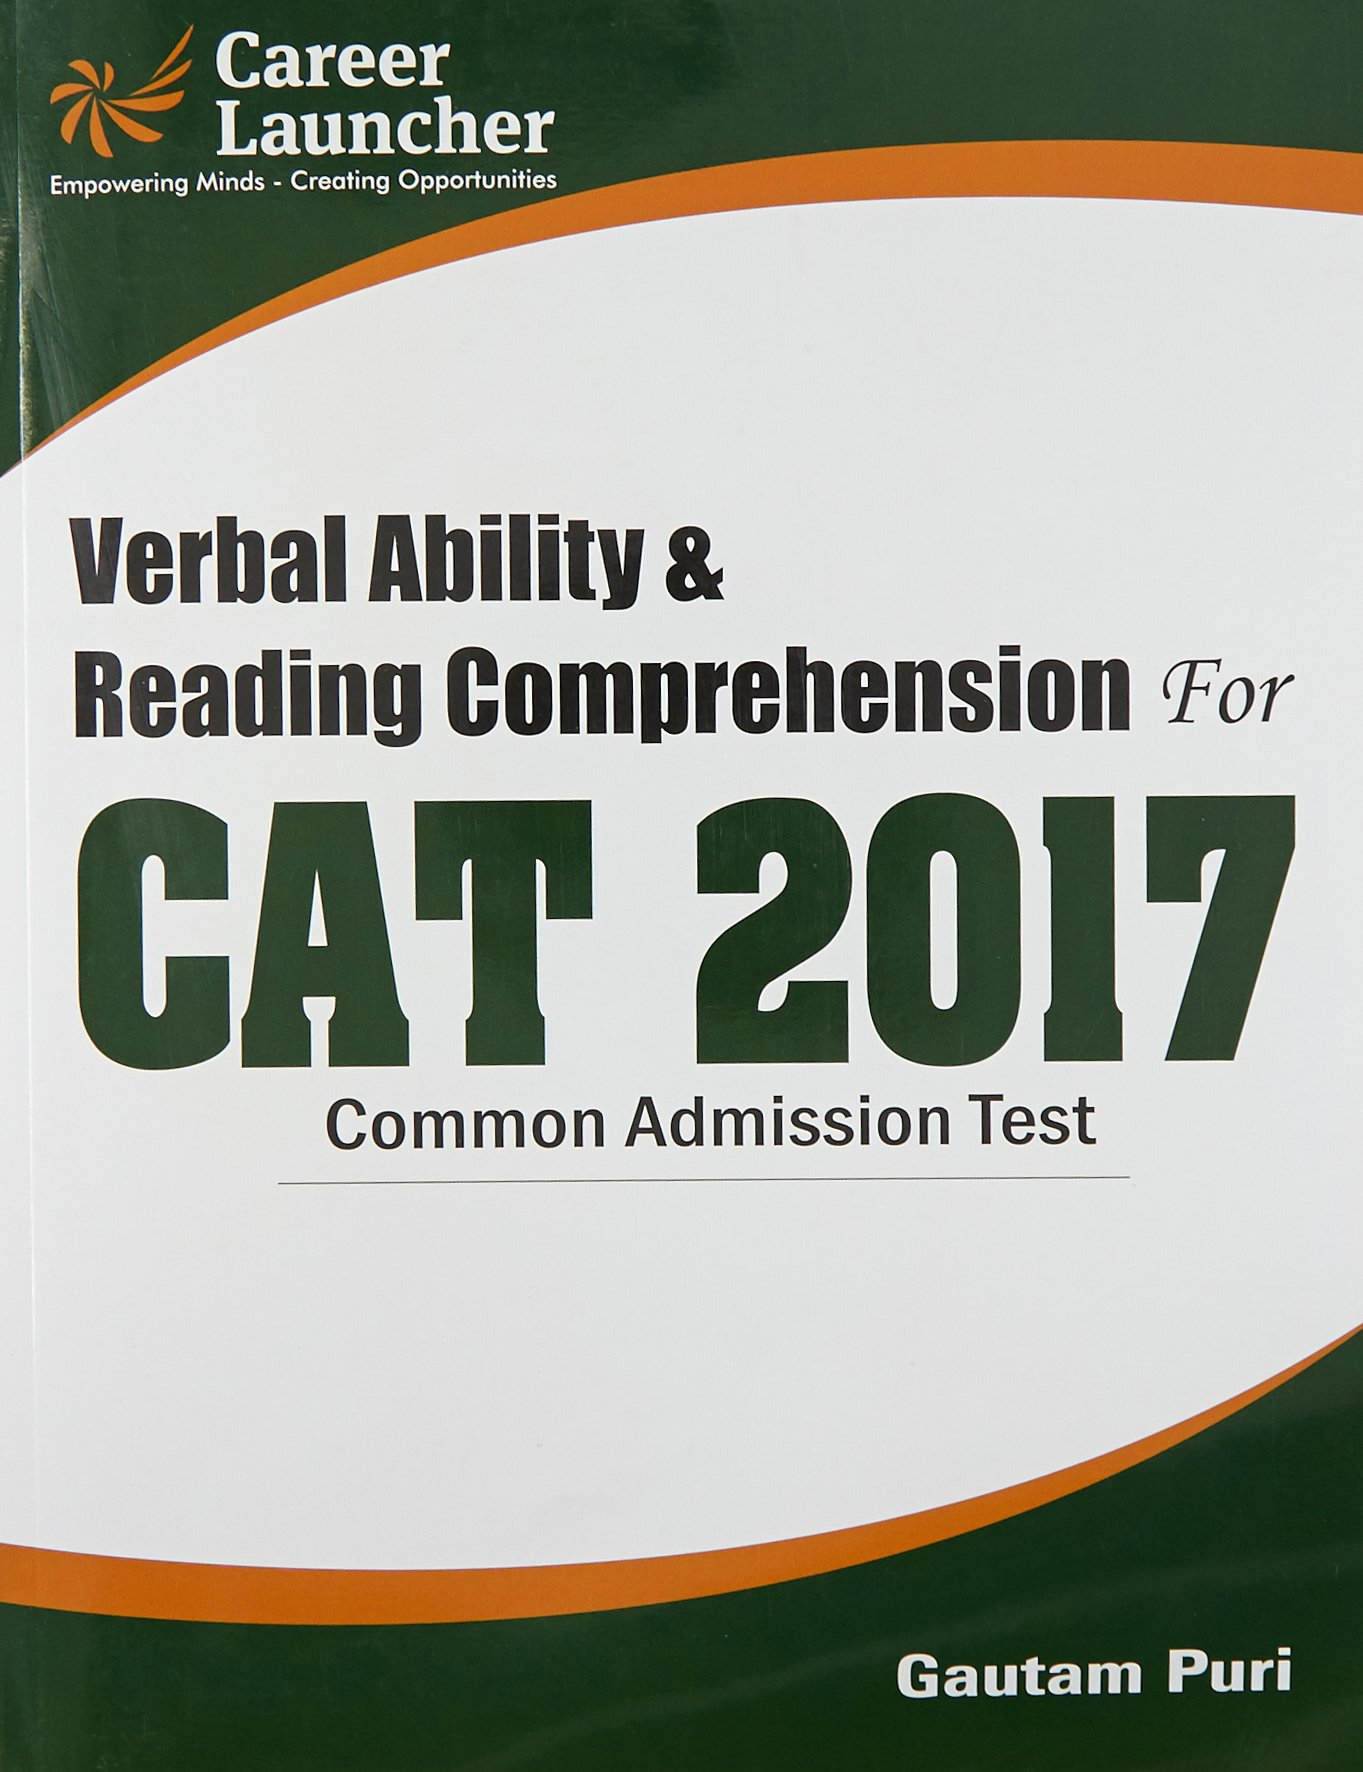 Buy cat 2017 verbal ability reading comprehension book online at buy cat 2017 verbal ability reading comprehension book online at low prices in india cat 2017 verbal ability reading comprehension reviews ratings fandeluxe Images